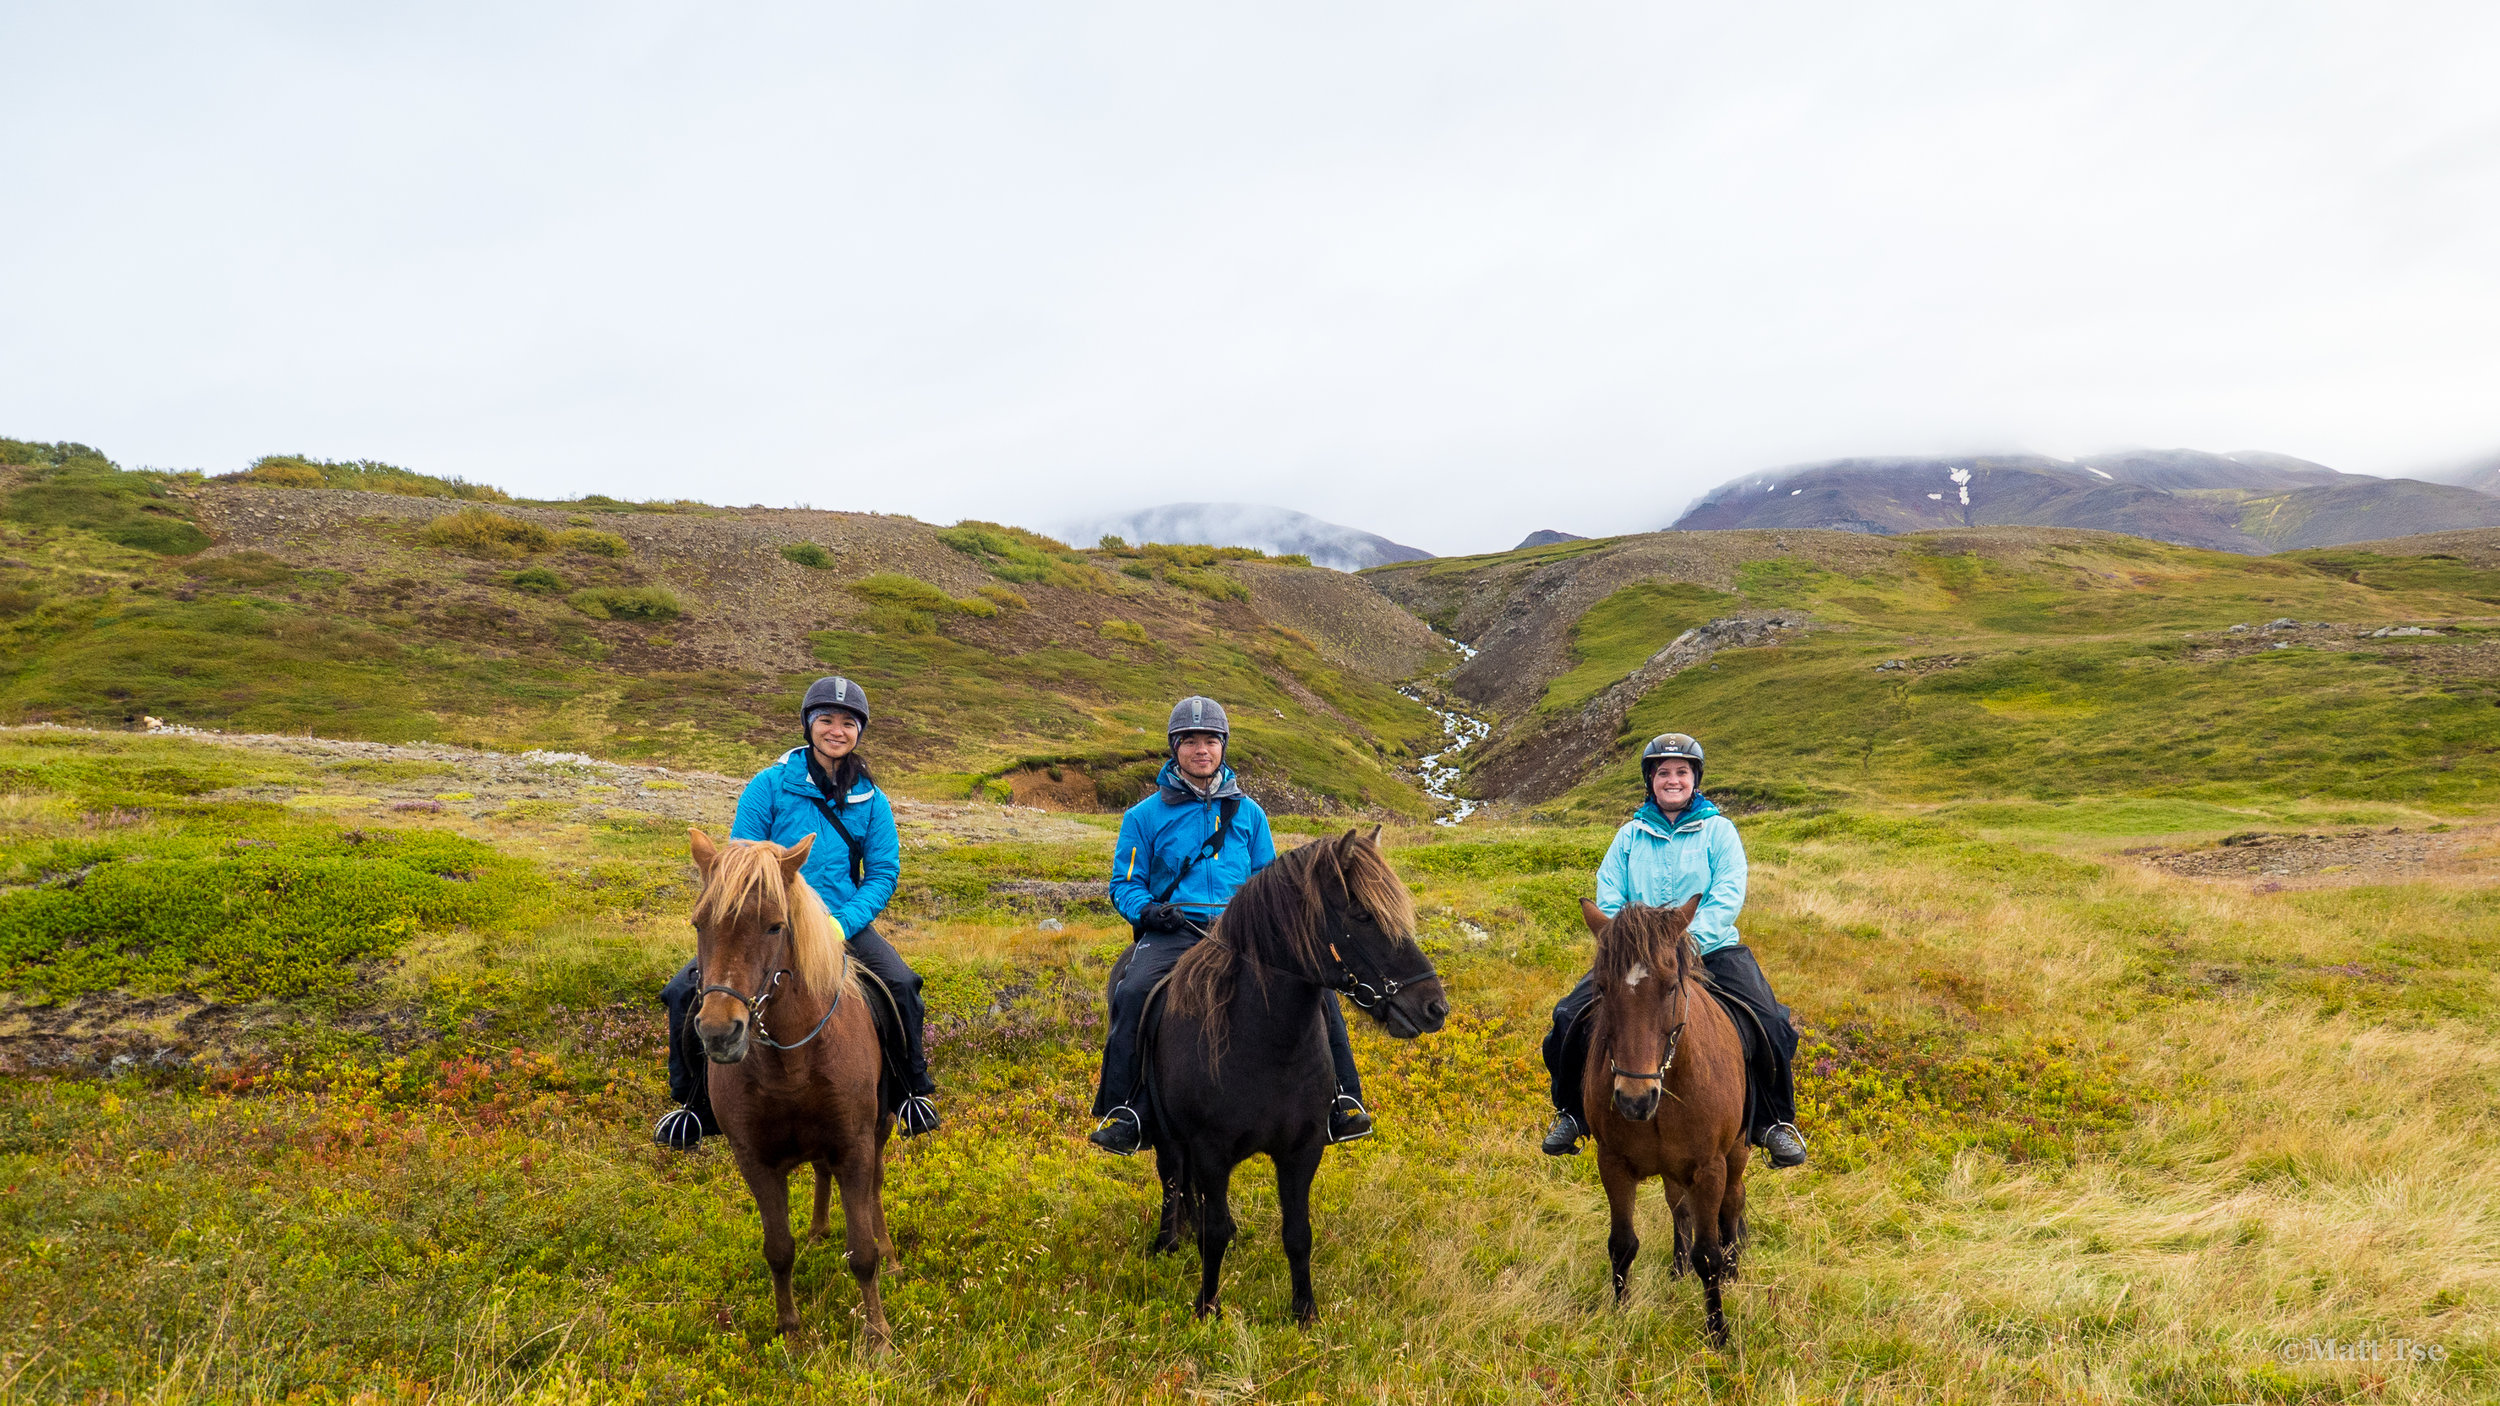 Group shot of us on horseback, we had a private tour (unintentionally)and this might have been the best value activity we did.